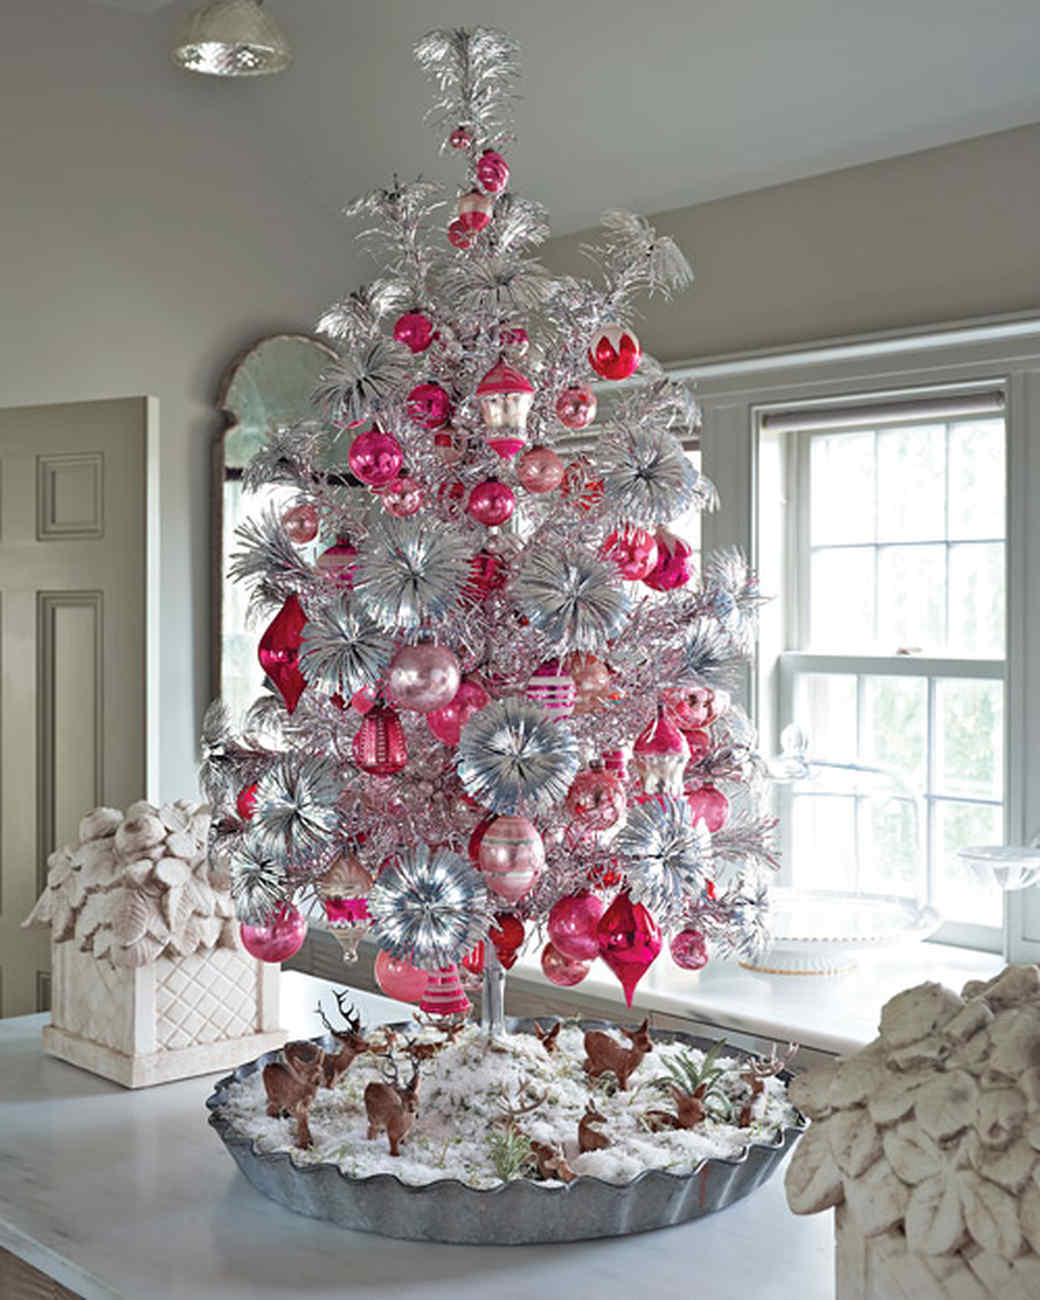 28 creative christmas tree decorating ideas martha stewart - Pink Christmas Decorations Ideas